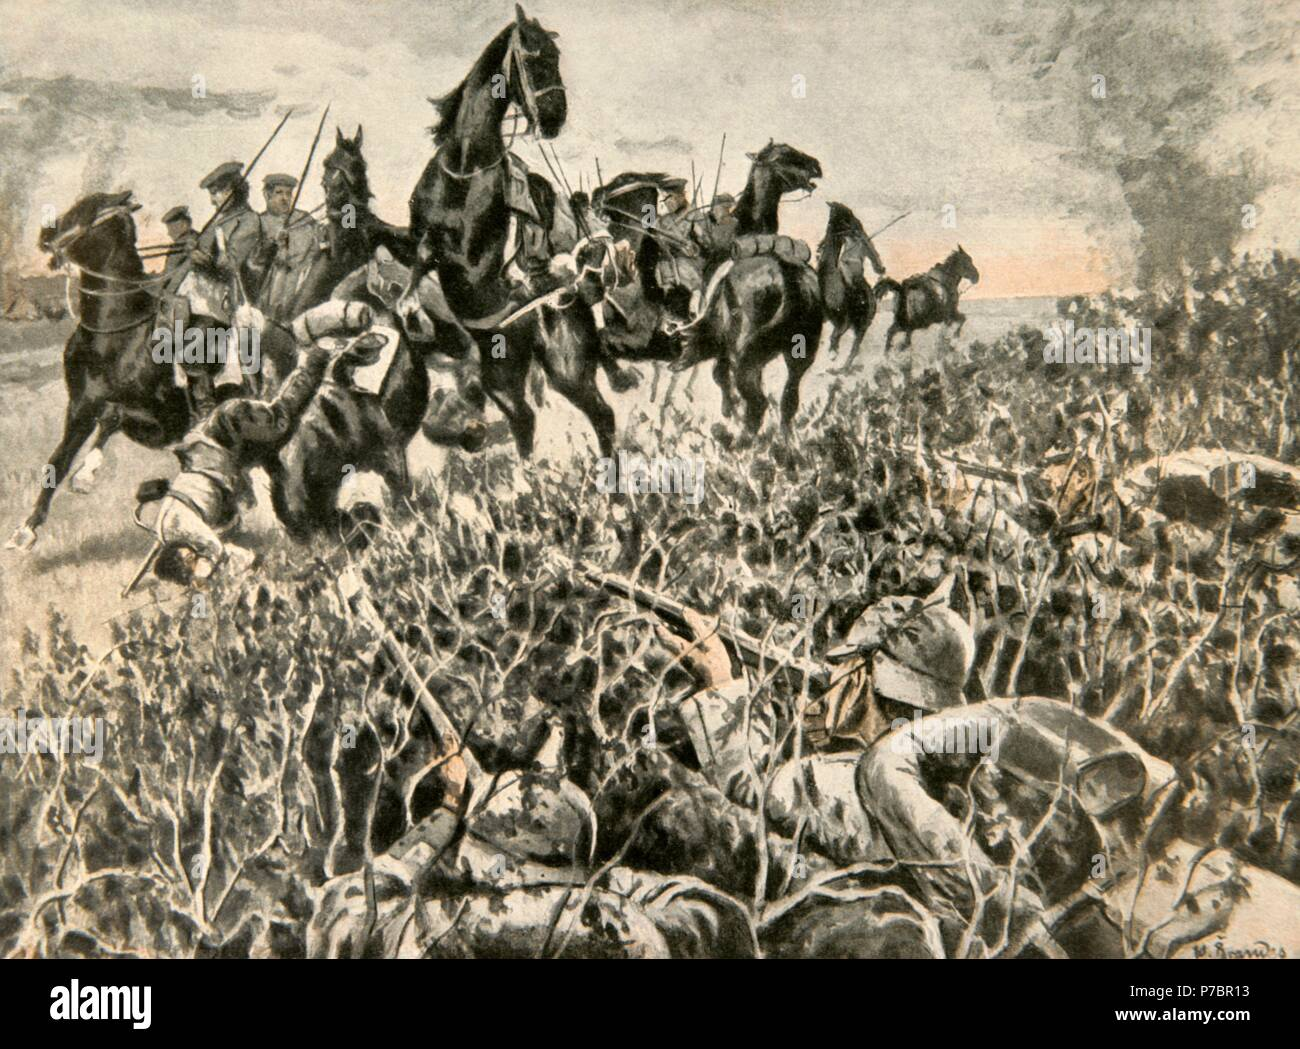 World War I (1914-1918). Three German soldiers (Central Powers) hiding to attack Russian cavalry scouts (Allies). Kutno, Poland. Engraving. La Esfera, 1915. - Stock Image